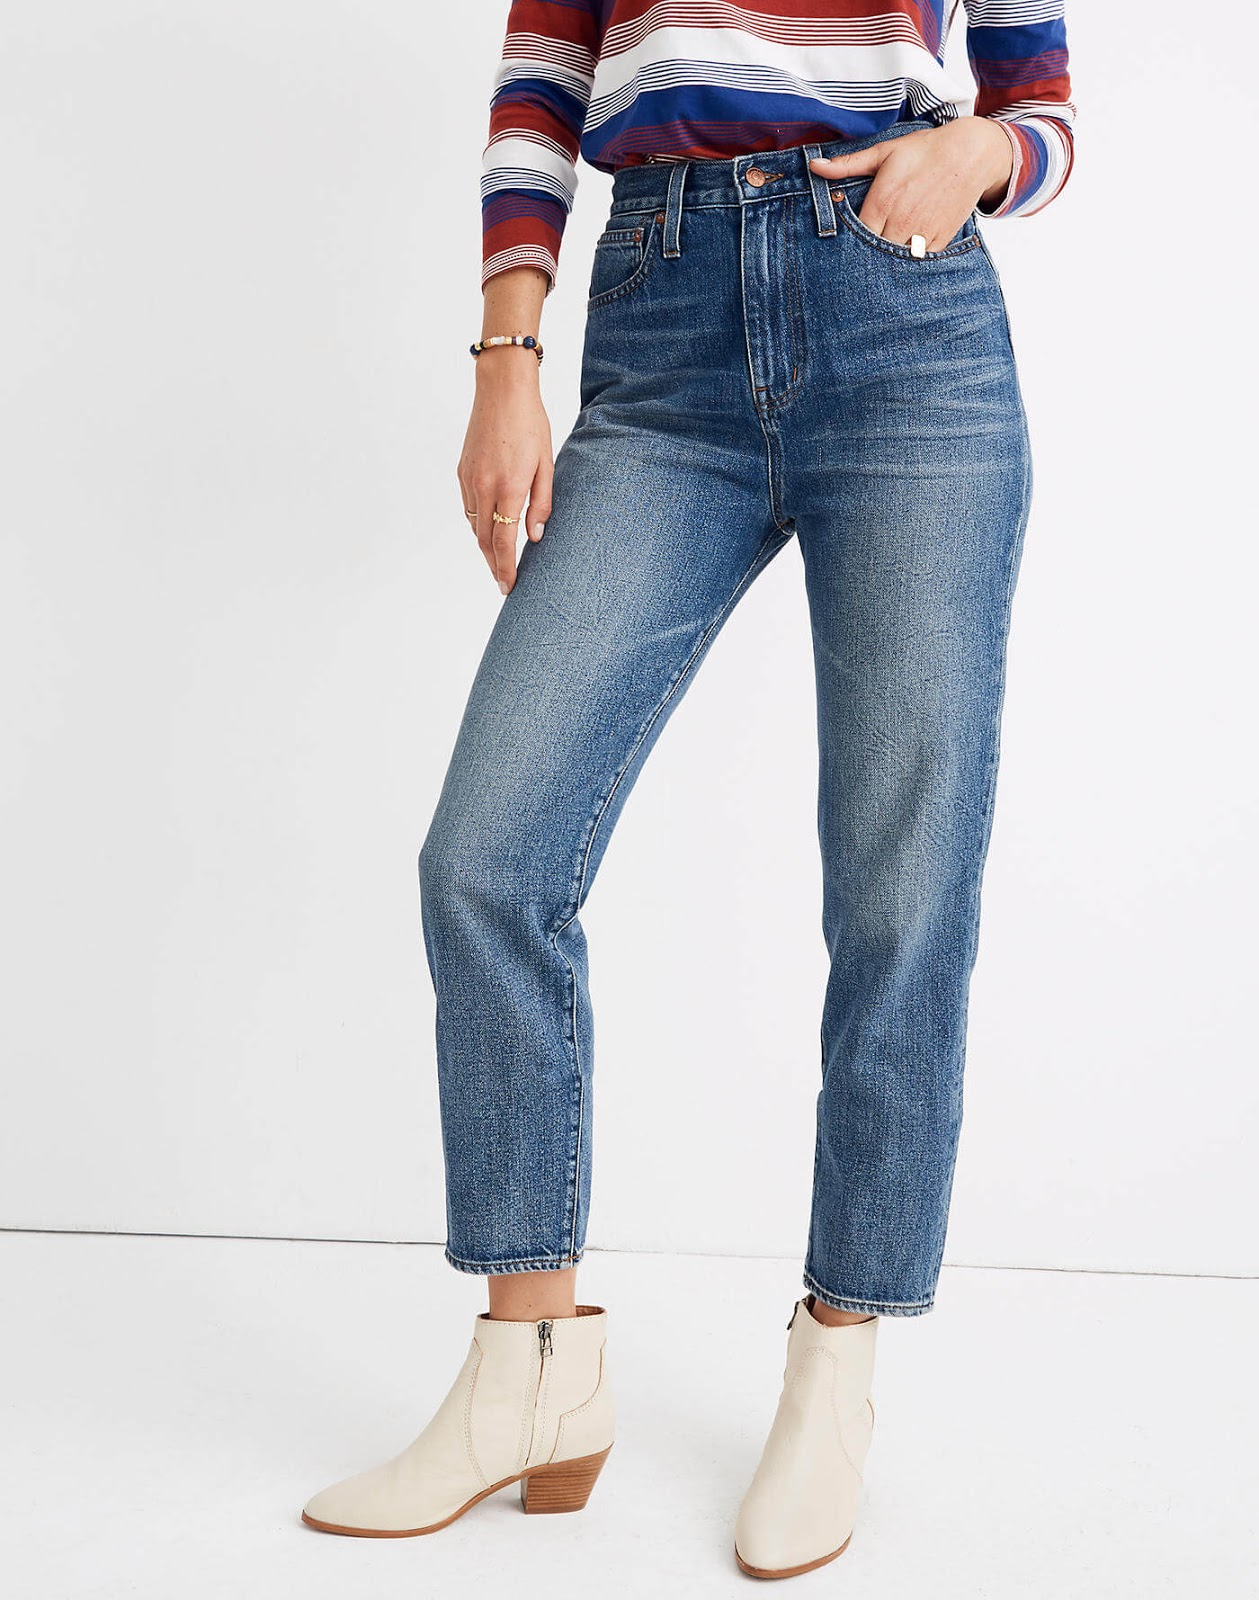 Madewell The Momjean in Downey Wash